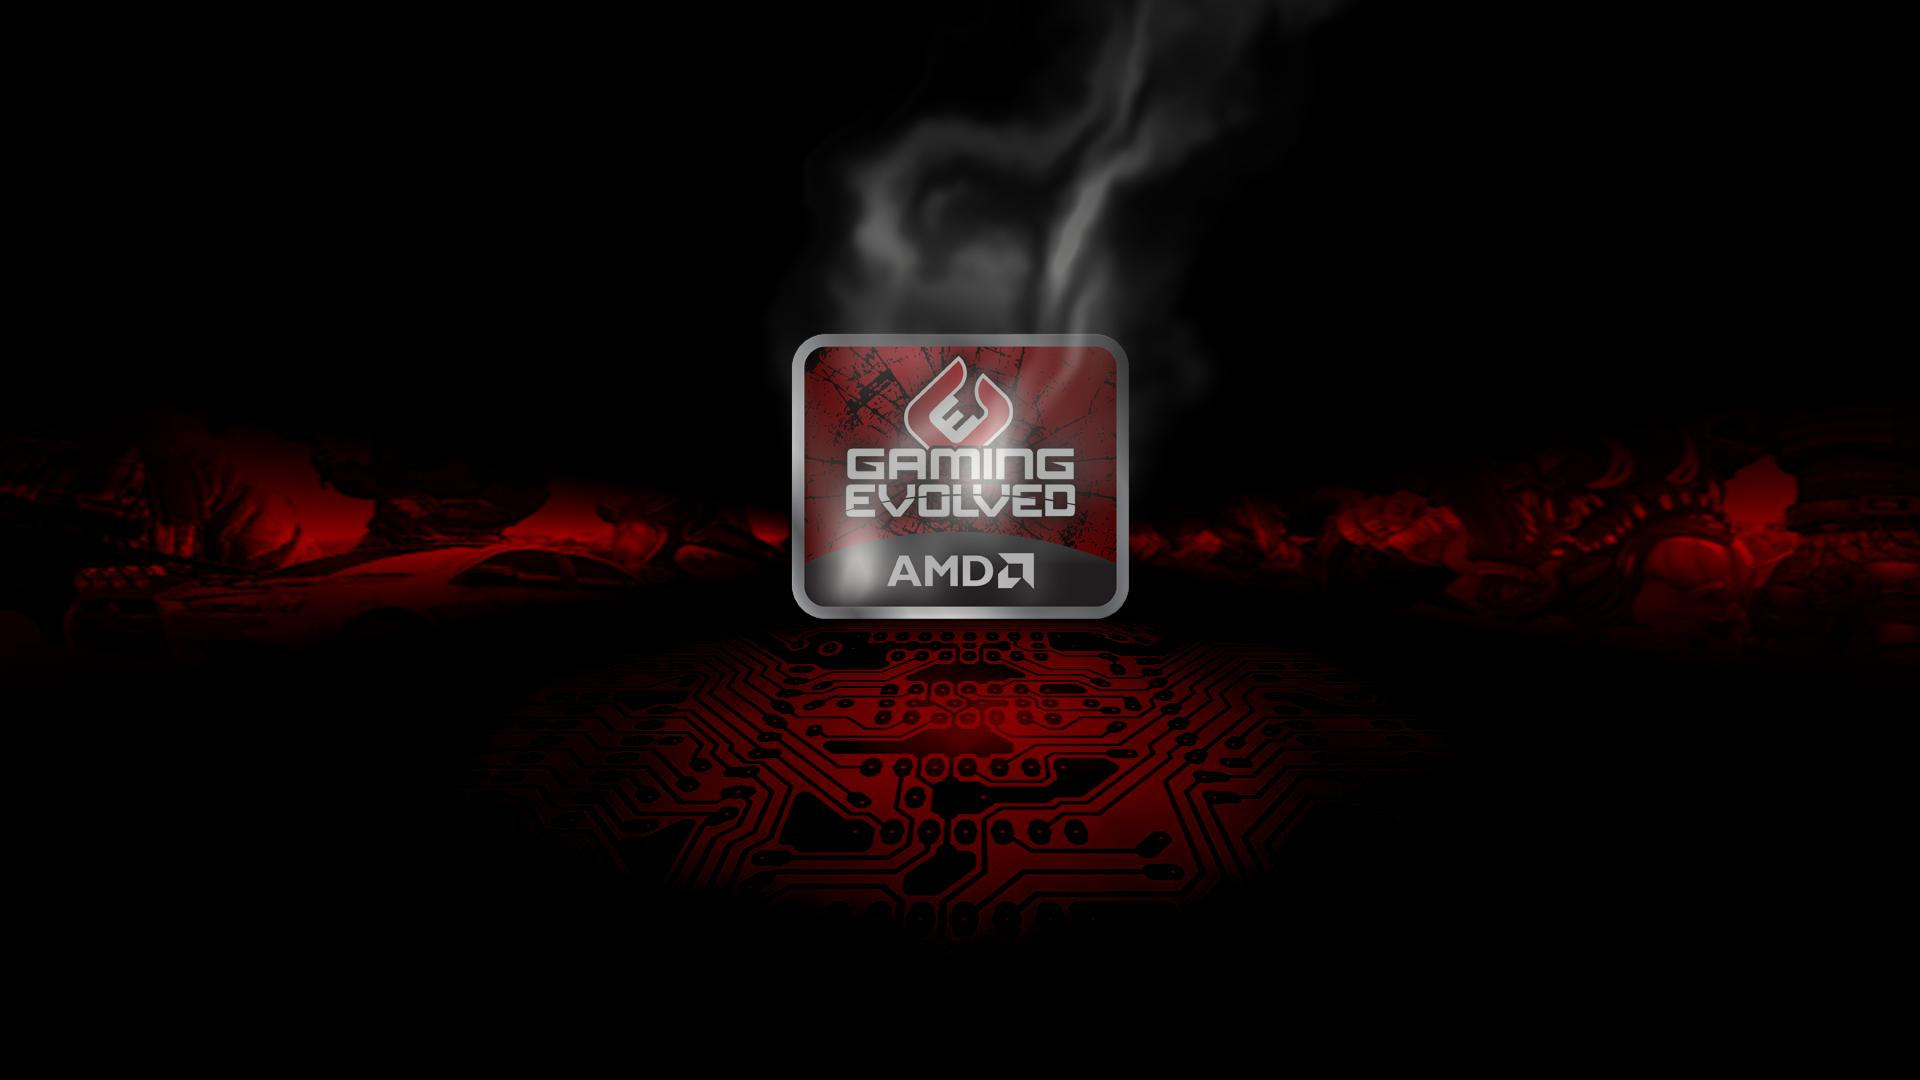 Amd Wallpaper - WallpaperSafari